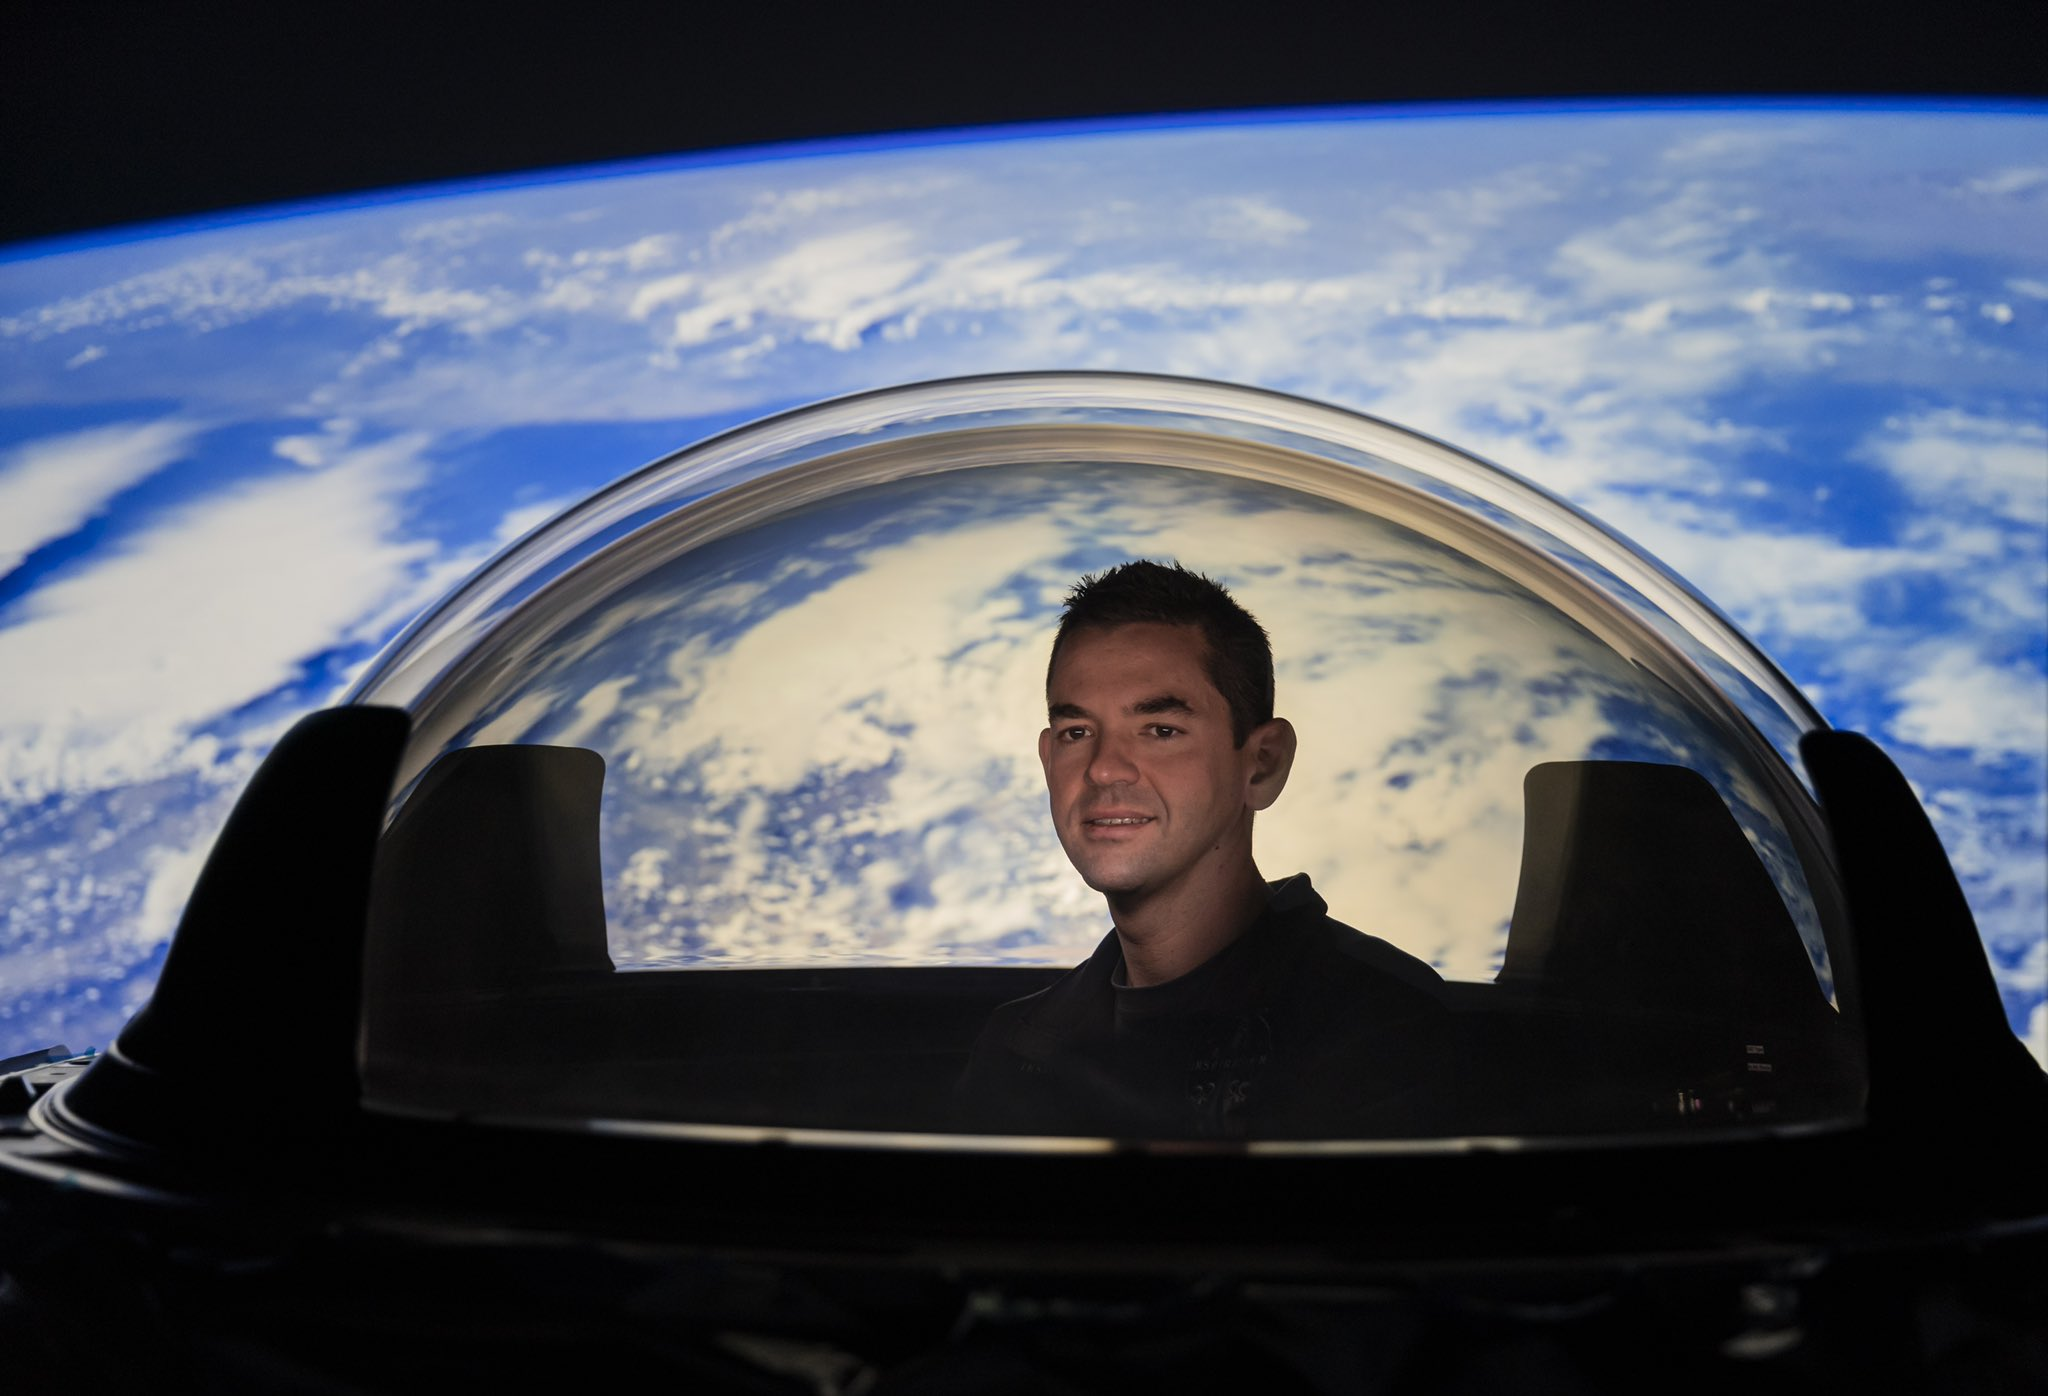 New fishbowl-like window will give SpaceX Dragon astronauts a knockout view of Earth